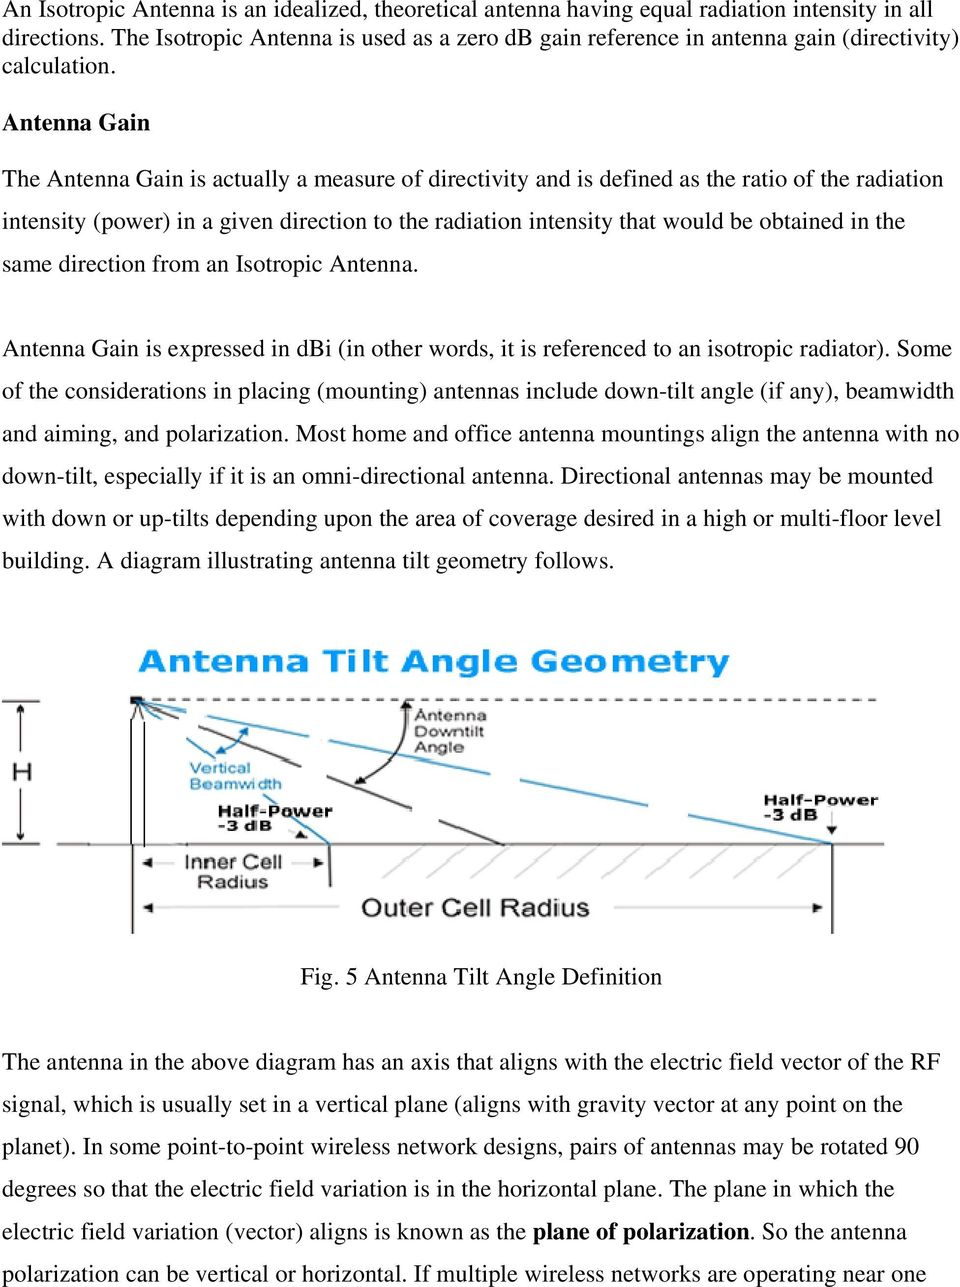 Antenna Gain The Antenna Gain is actually a measure of directivity and is defined as the ratio of the radiation intensity (power) in a given direction to the radiation intensity that would be